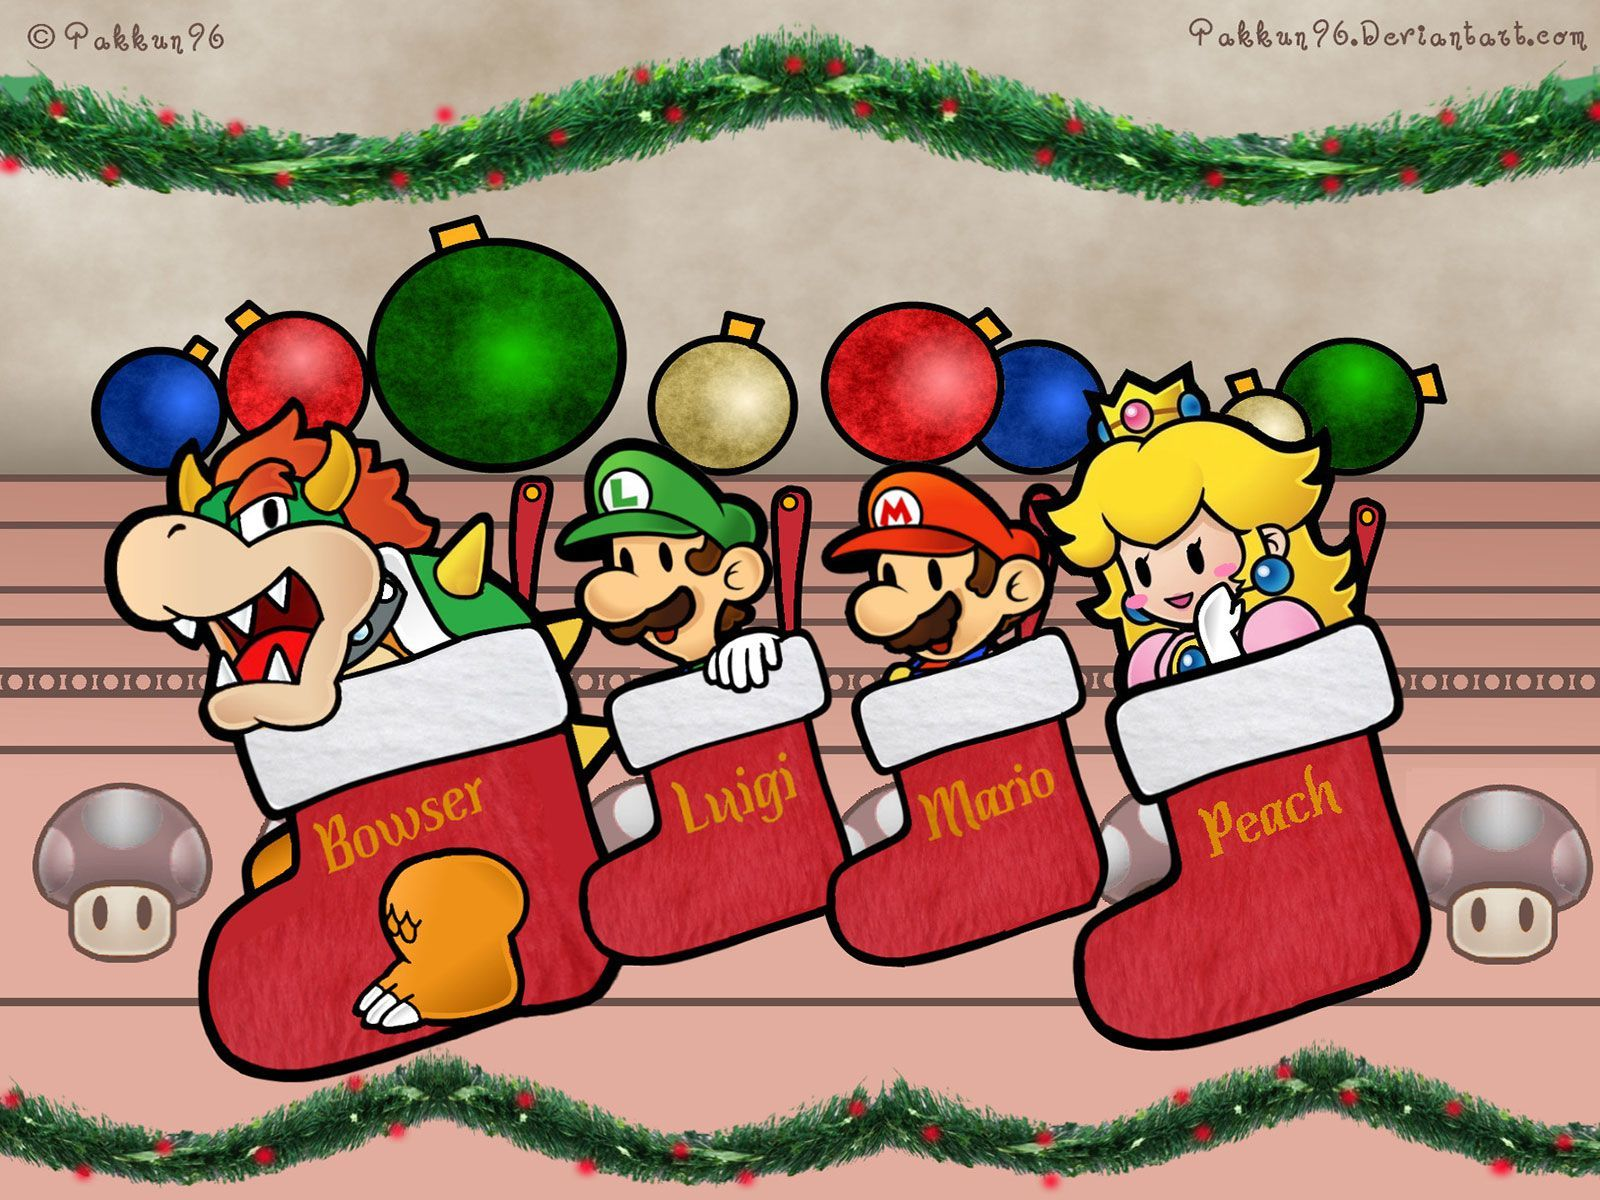 1600x1200 Super Mario Characters In Christmas Socks Wallpaper | Video Game ...